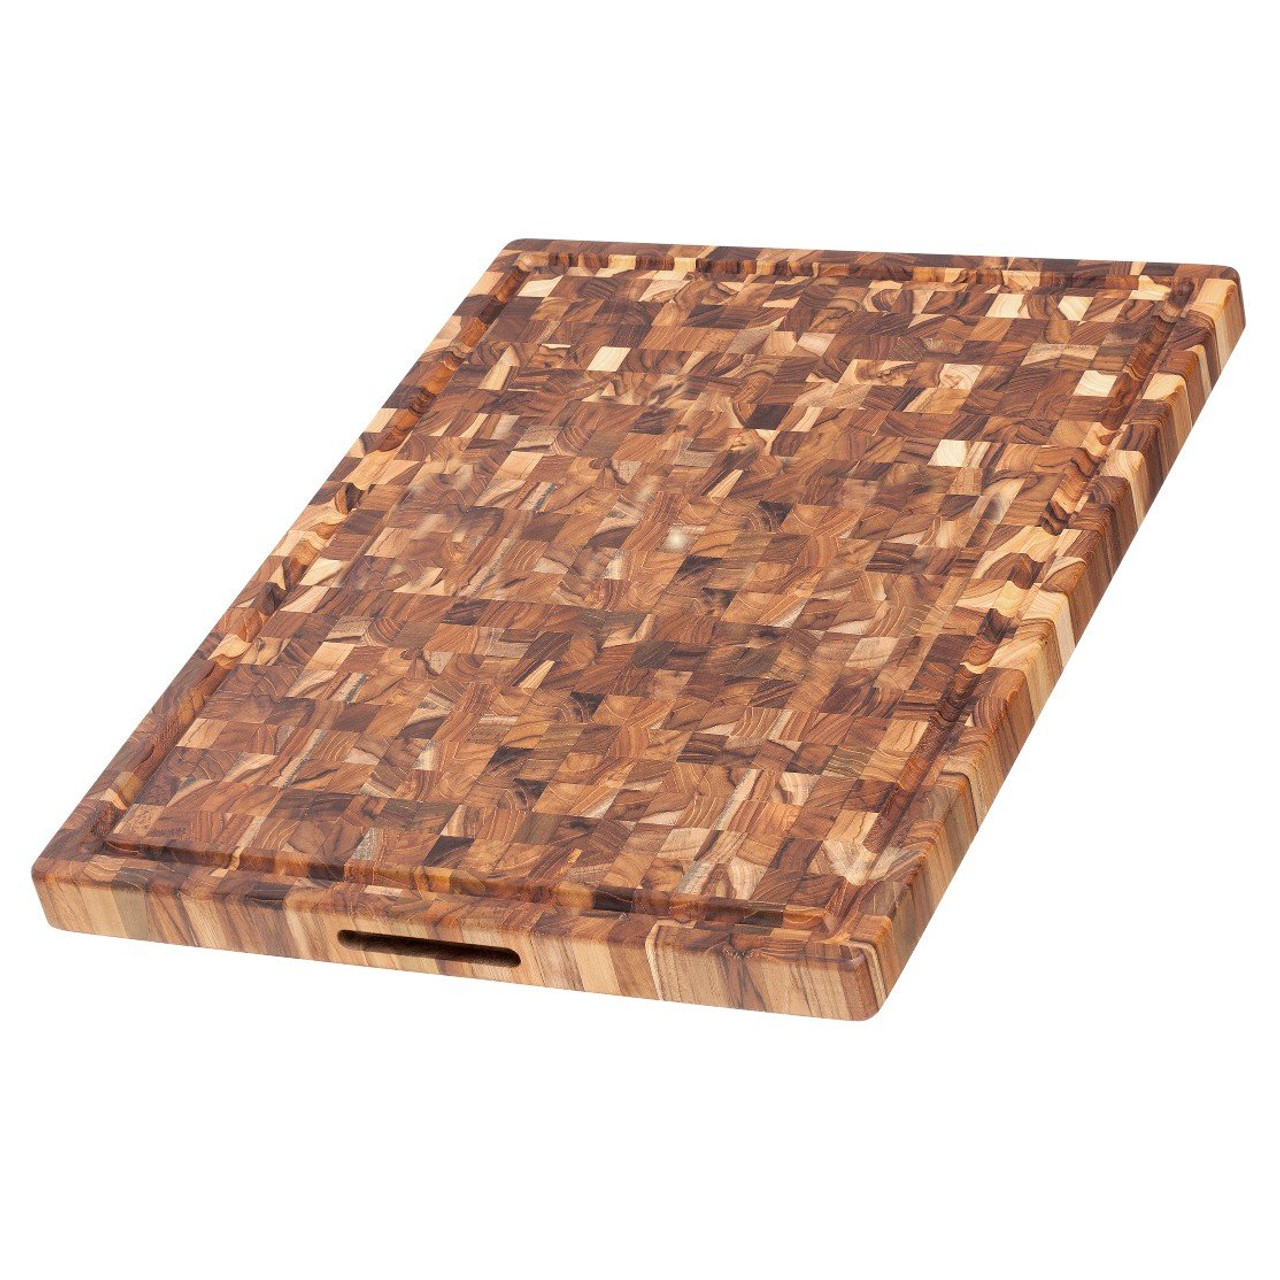 TEAKHAUS END GRAIN BUTCHER BLOCK WITH CANAL 24x18